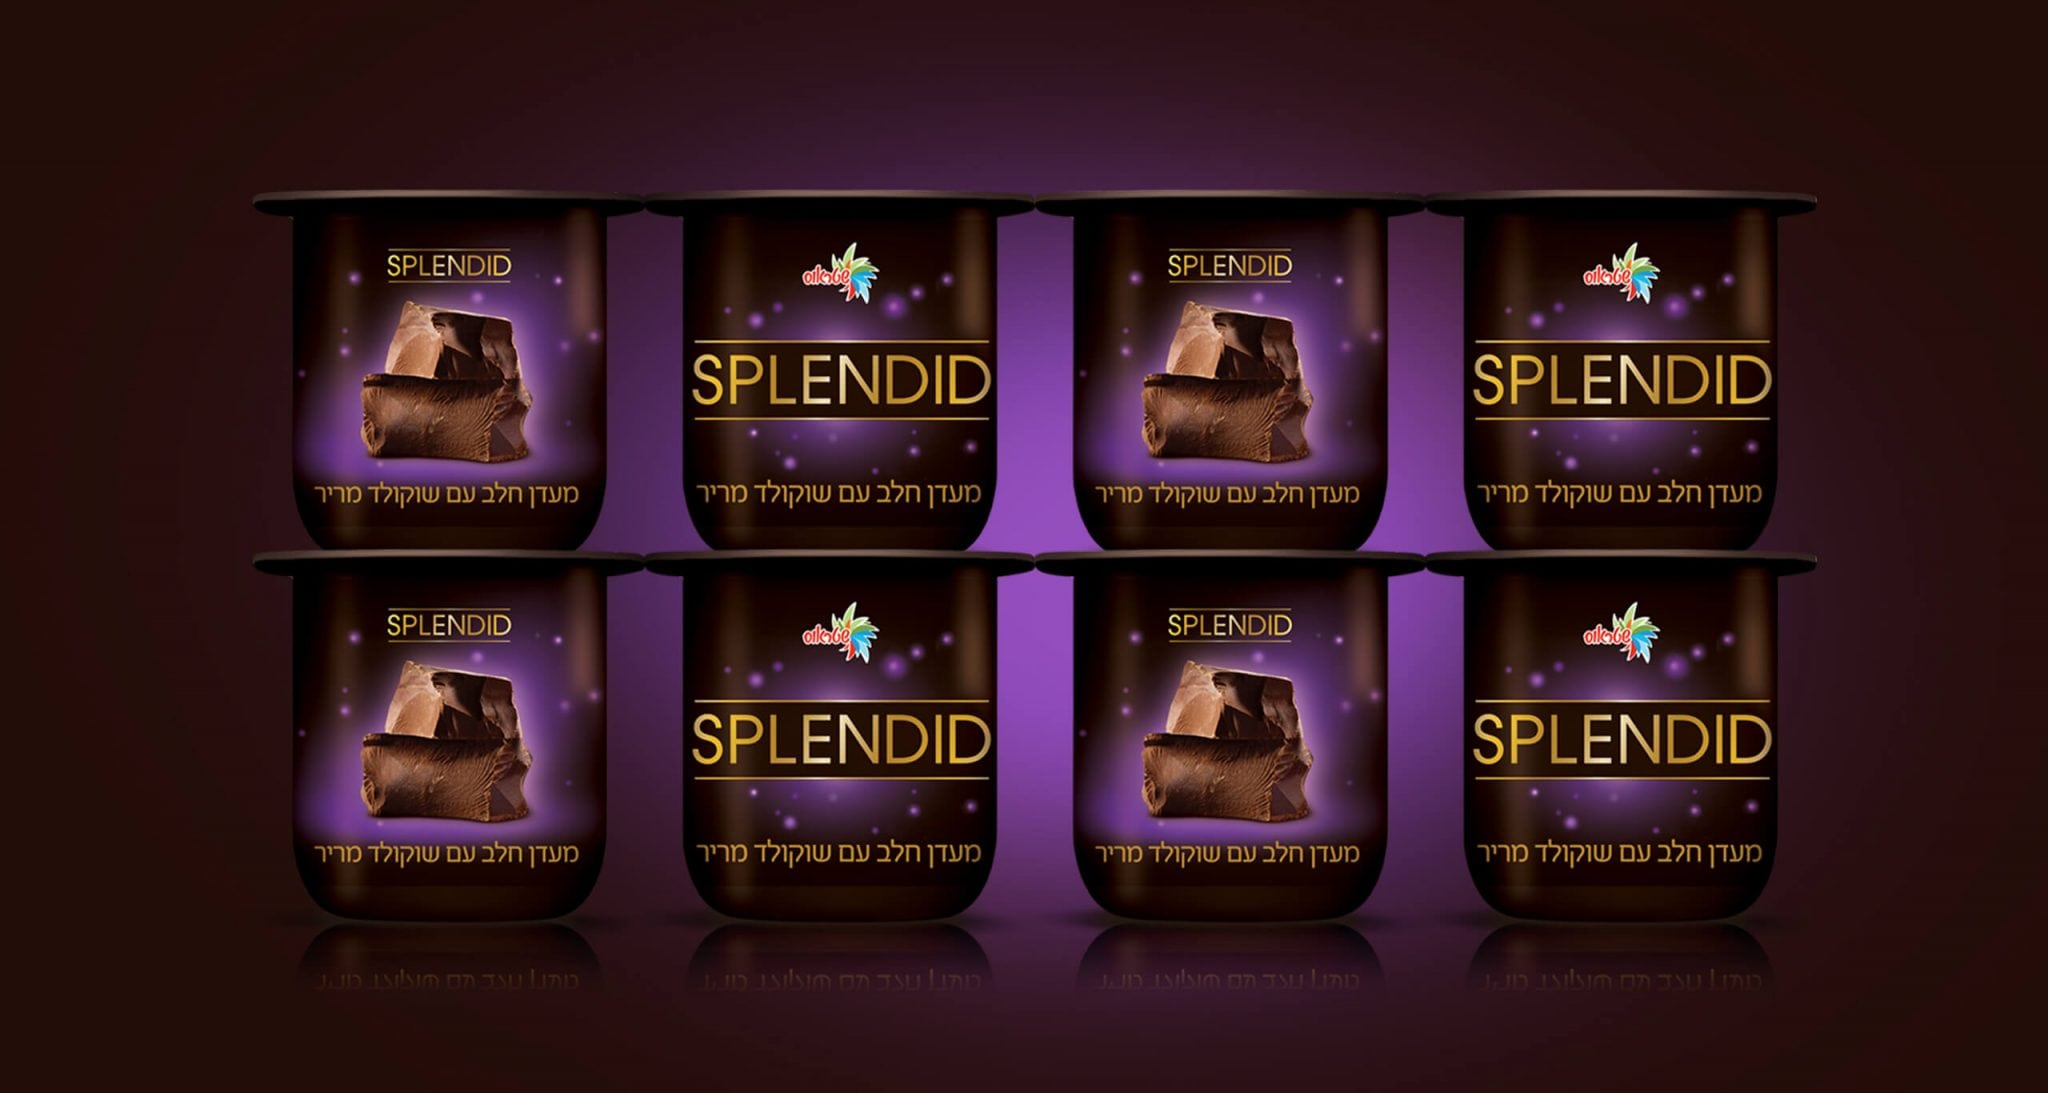 web_splendid_mousse_2560x1366_9